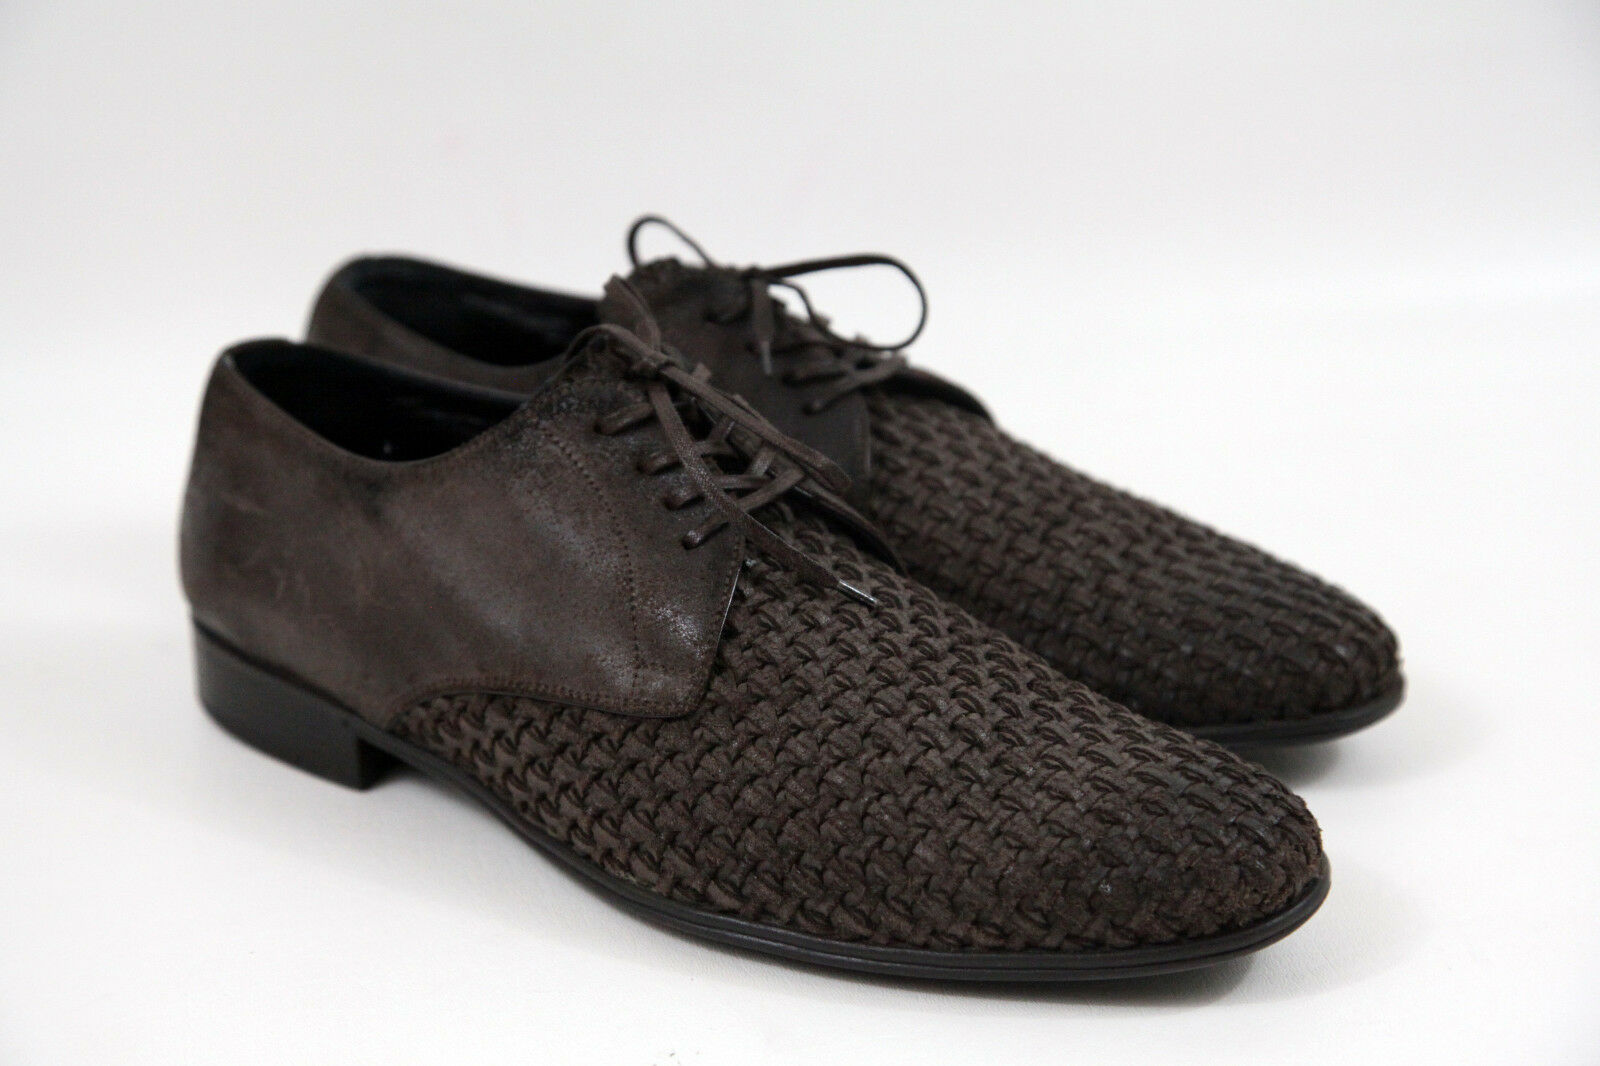 #Dolce & Gabbana Woven Leather Worn Finish Oxfords Size 9 usa size 10 msrp 995